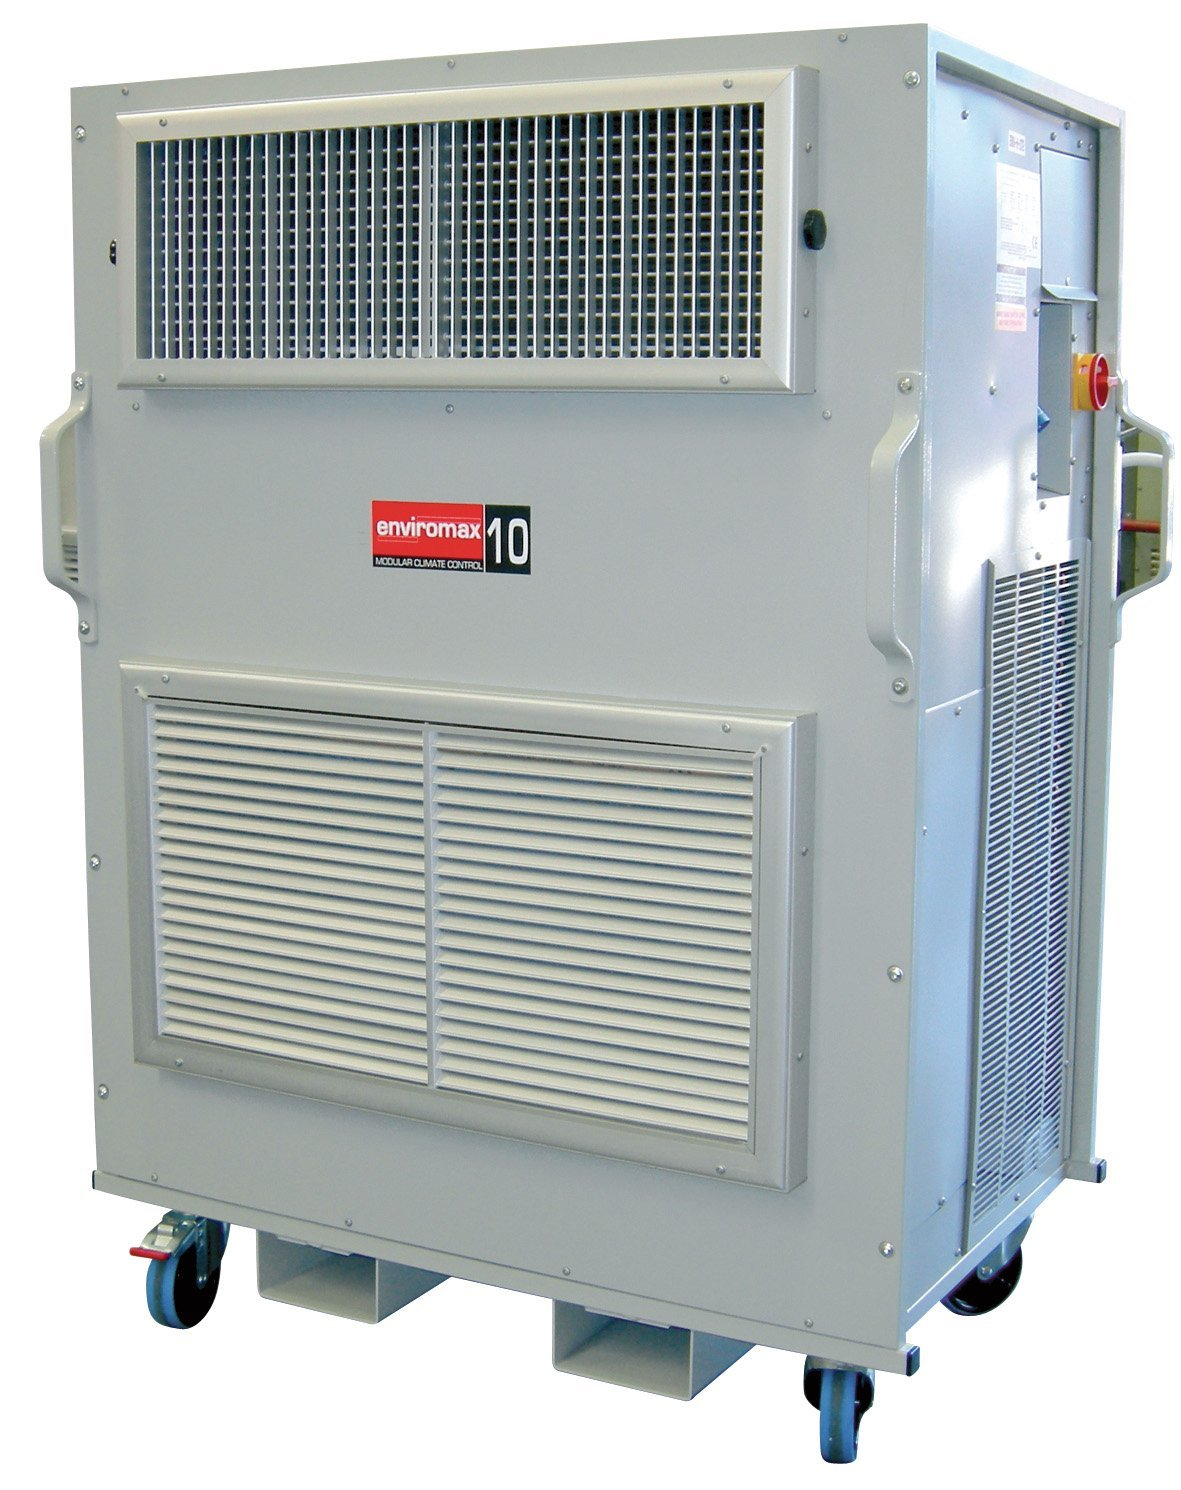 air conditioner enviromax10 10kw 36 000btu commercial mobile air